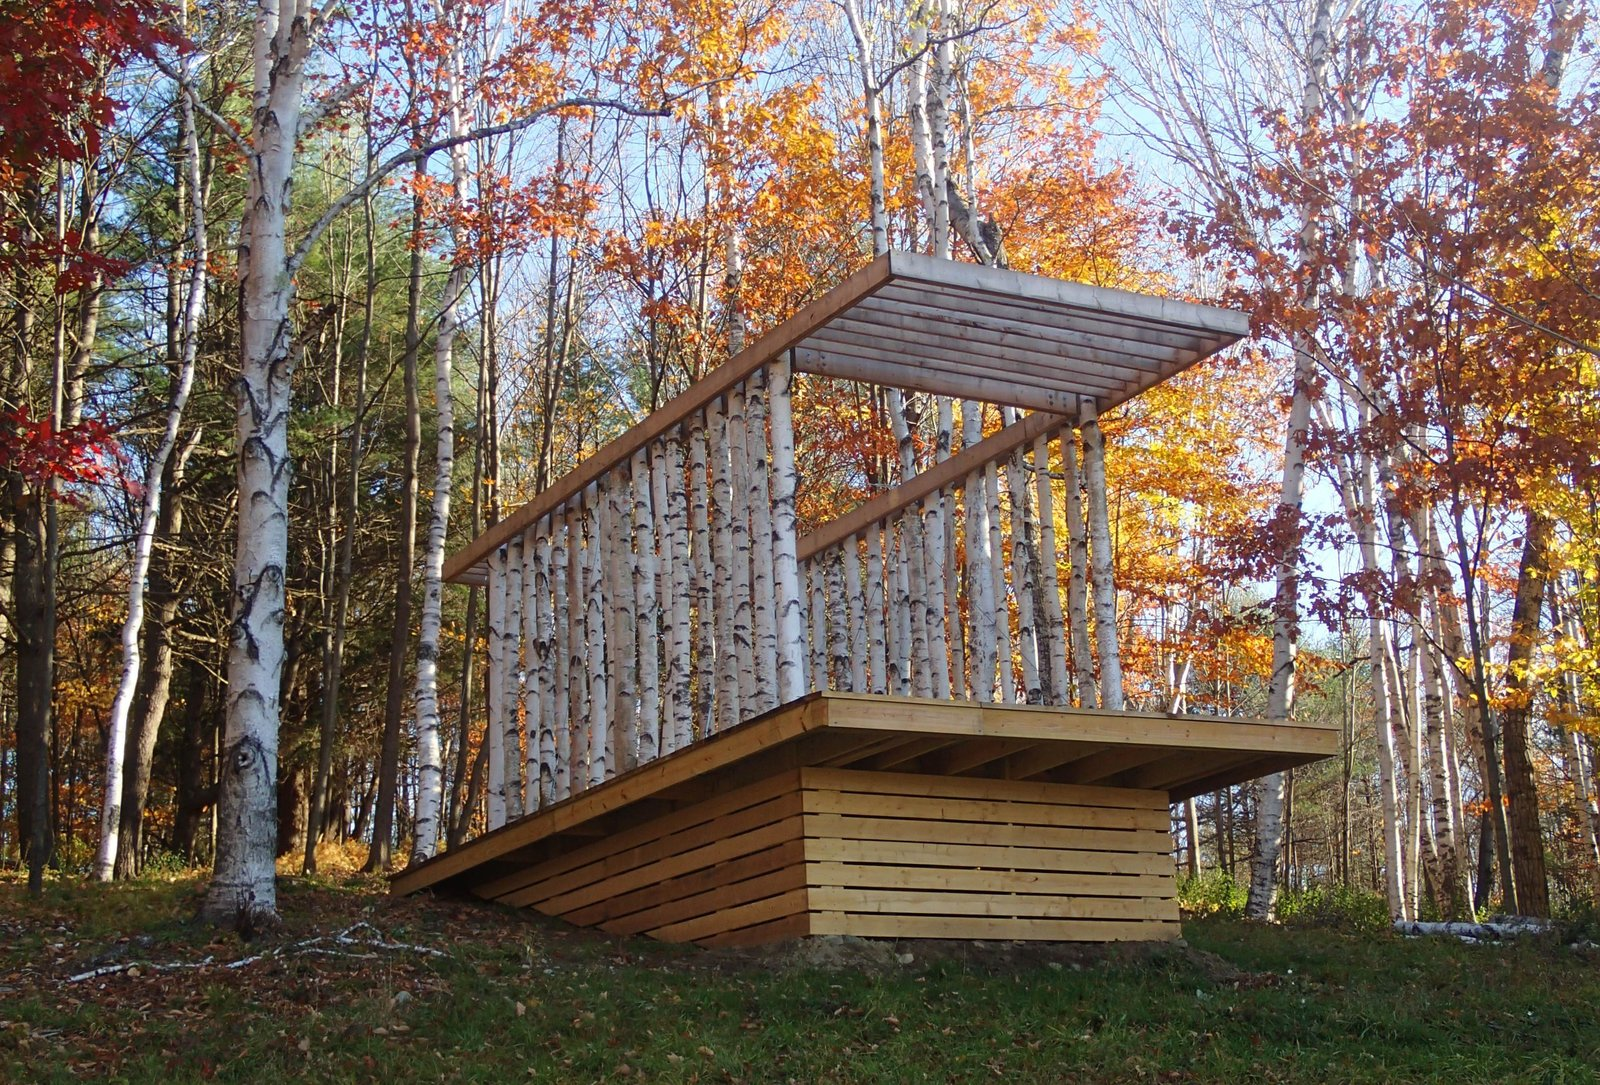 The Birch Pavilion sits atop a 14-by-26-foot platform composed of hemlock and pressure-treated timbers. Photo courtesy of Moskow Linn Architects. Tagged: Exterior and Wood Siding Material.  outside by Molly E. Osler, Interior Design from Aspiring Architects Build a Pavilion in the Vermont Forest